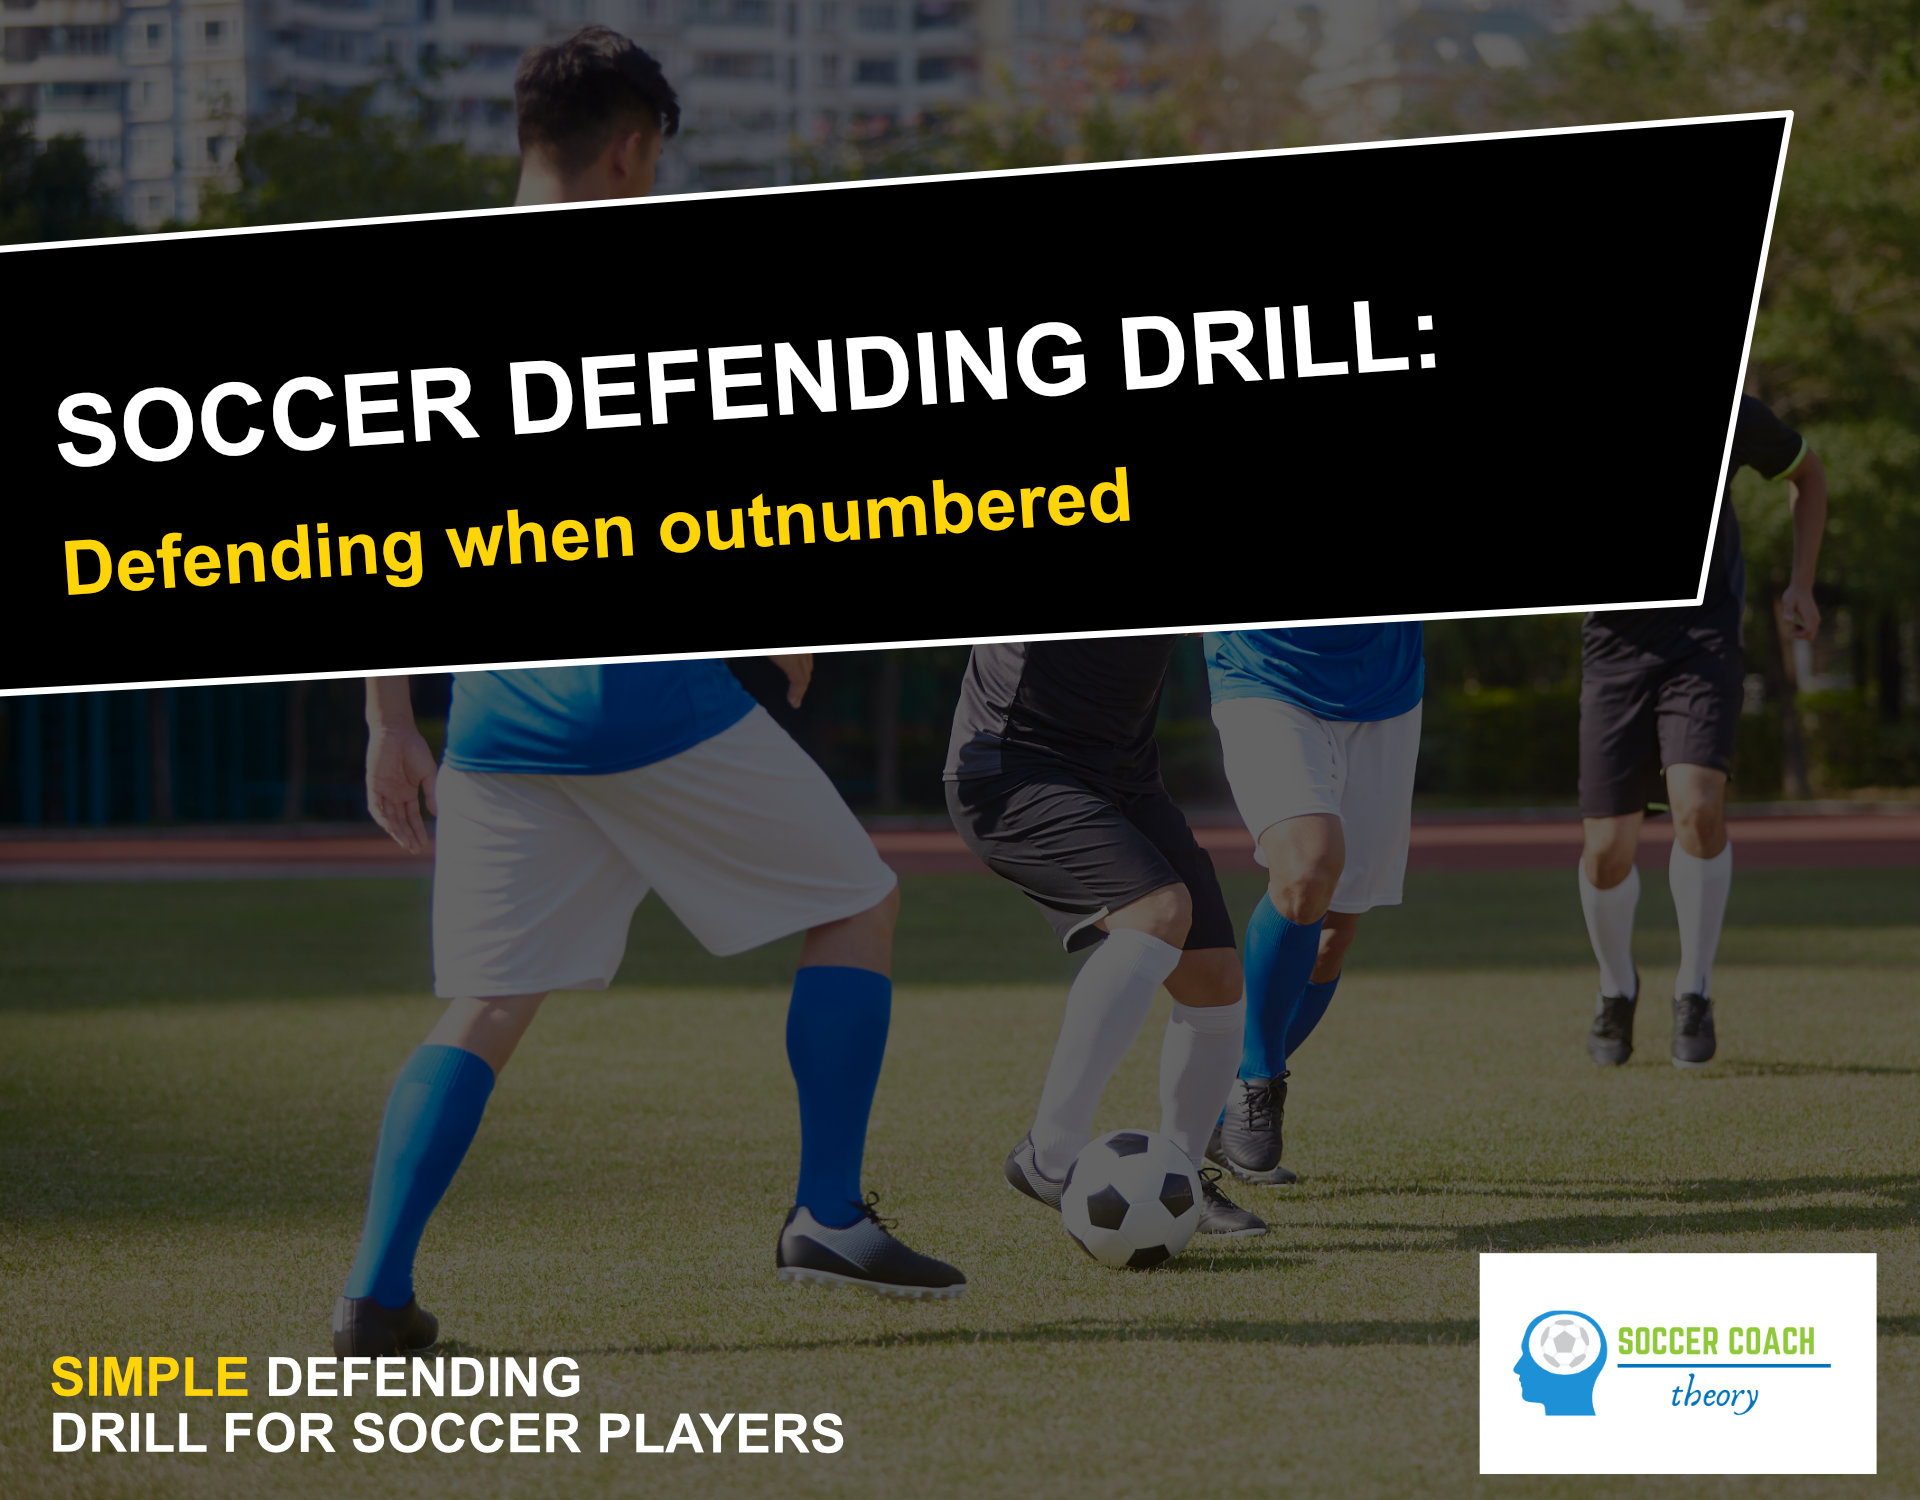 Soccer defending when outnumbered drill